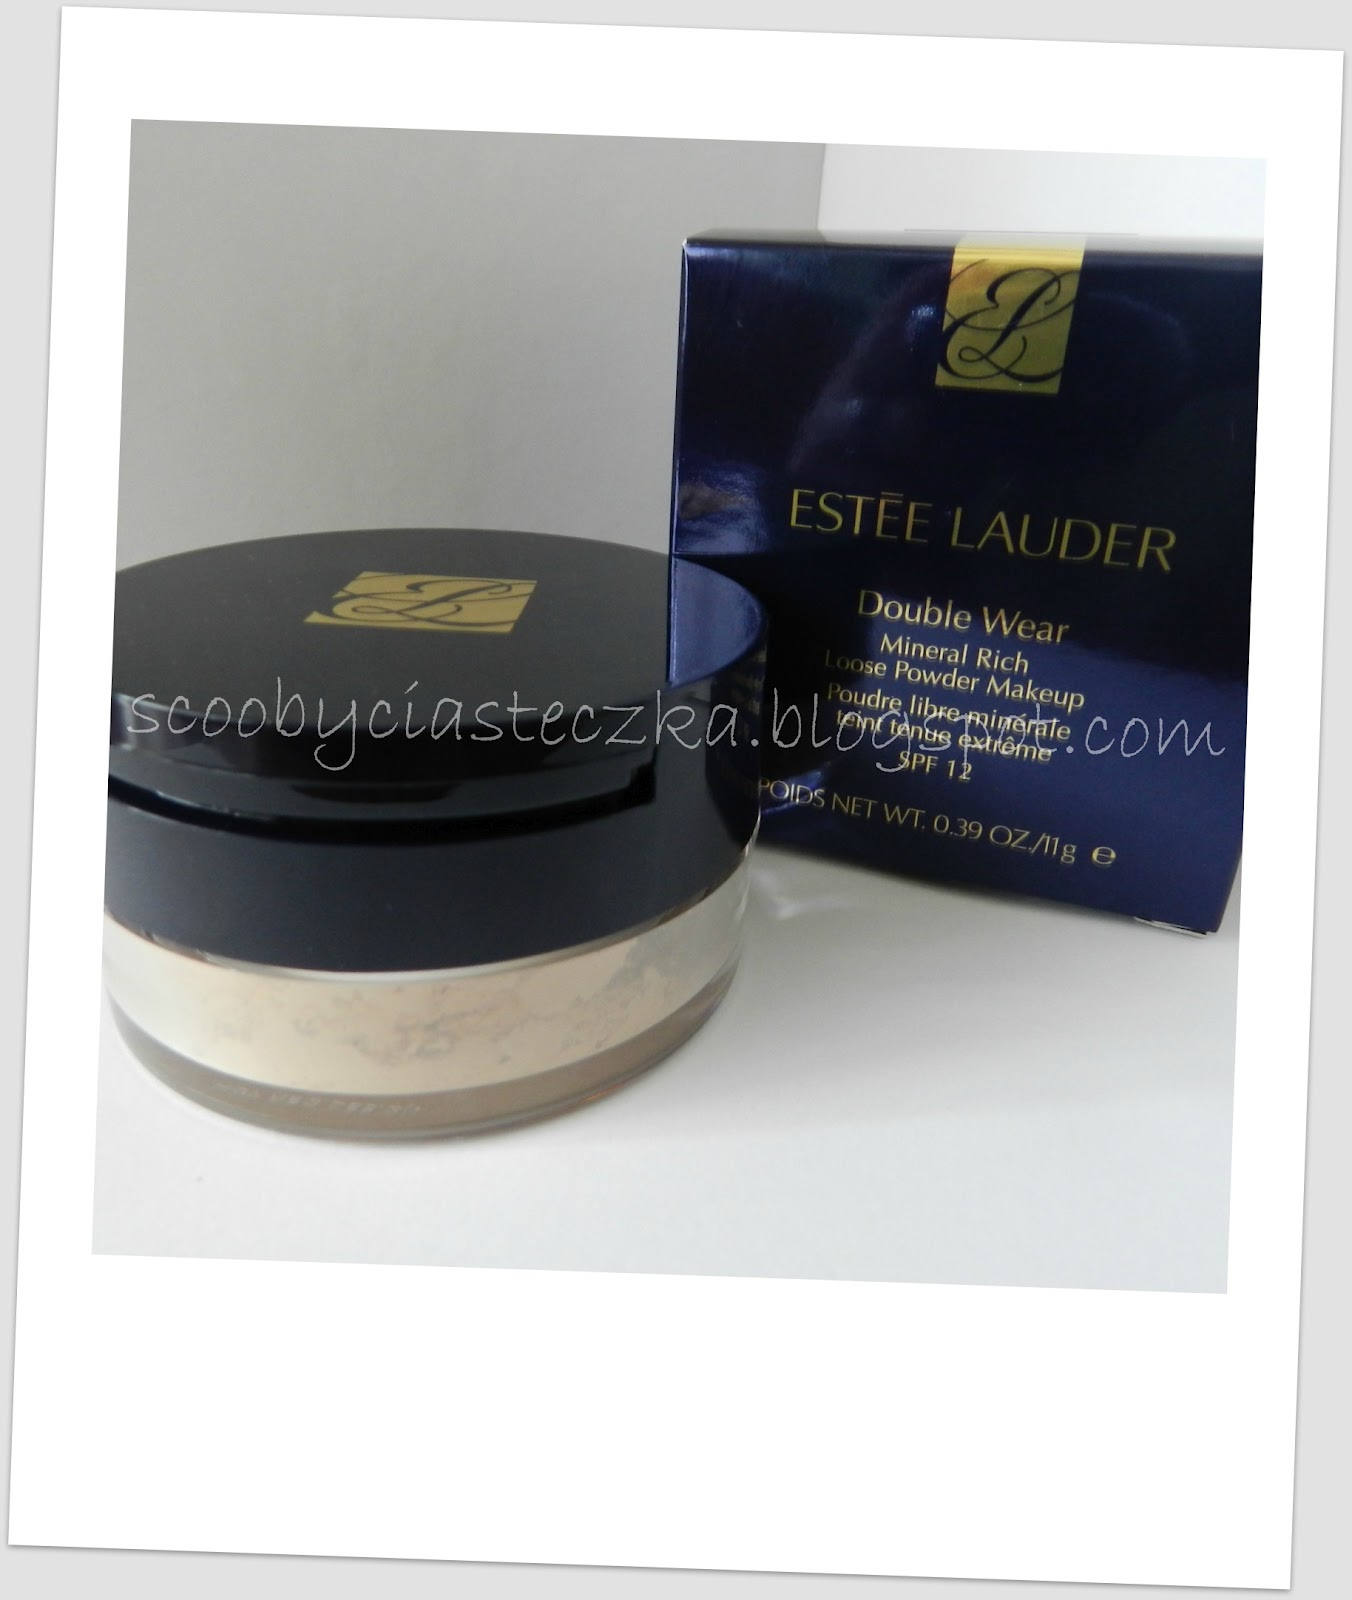 puder mineralny estee lauder czyli ameryka ski hit lata 2011 stellalily beauty blog. Black Bedroom Furniture Sets. Home Design Ideas